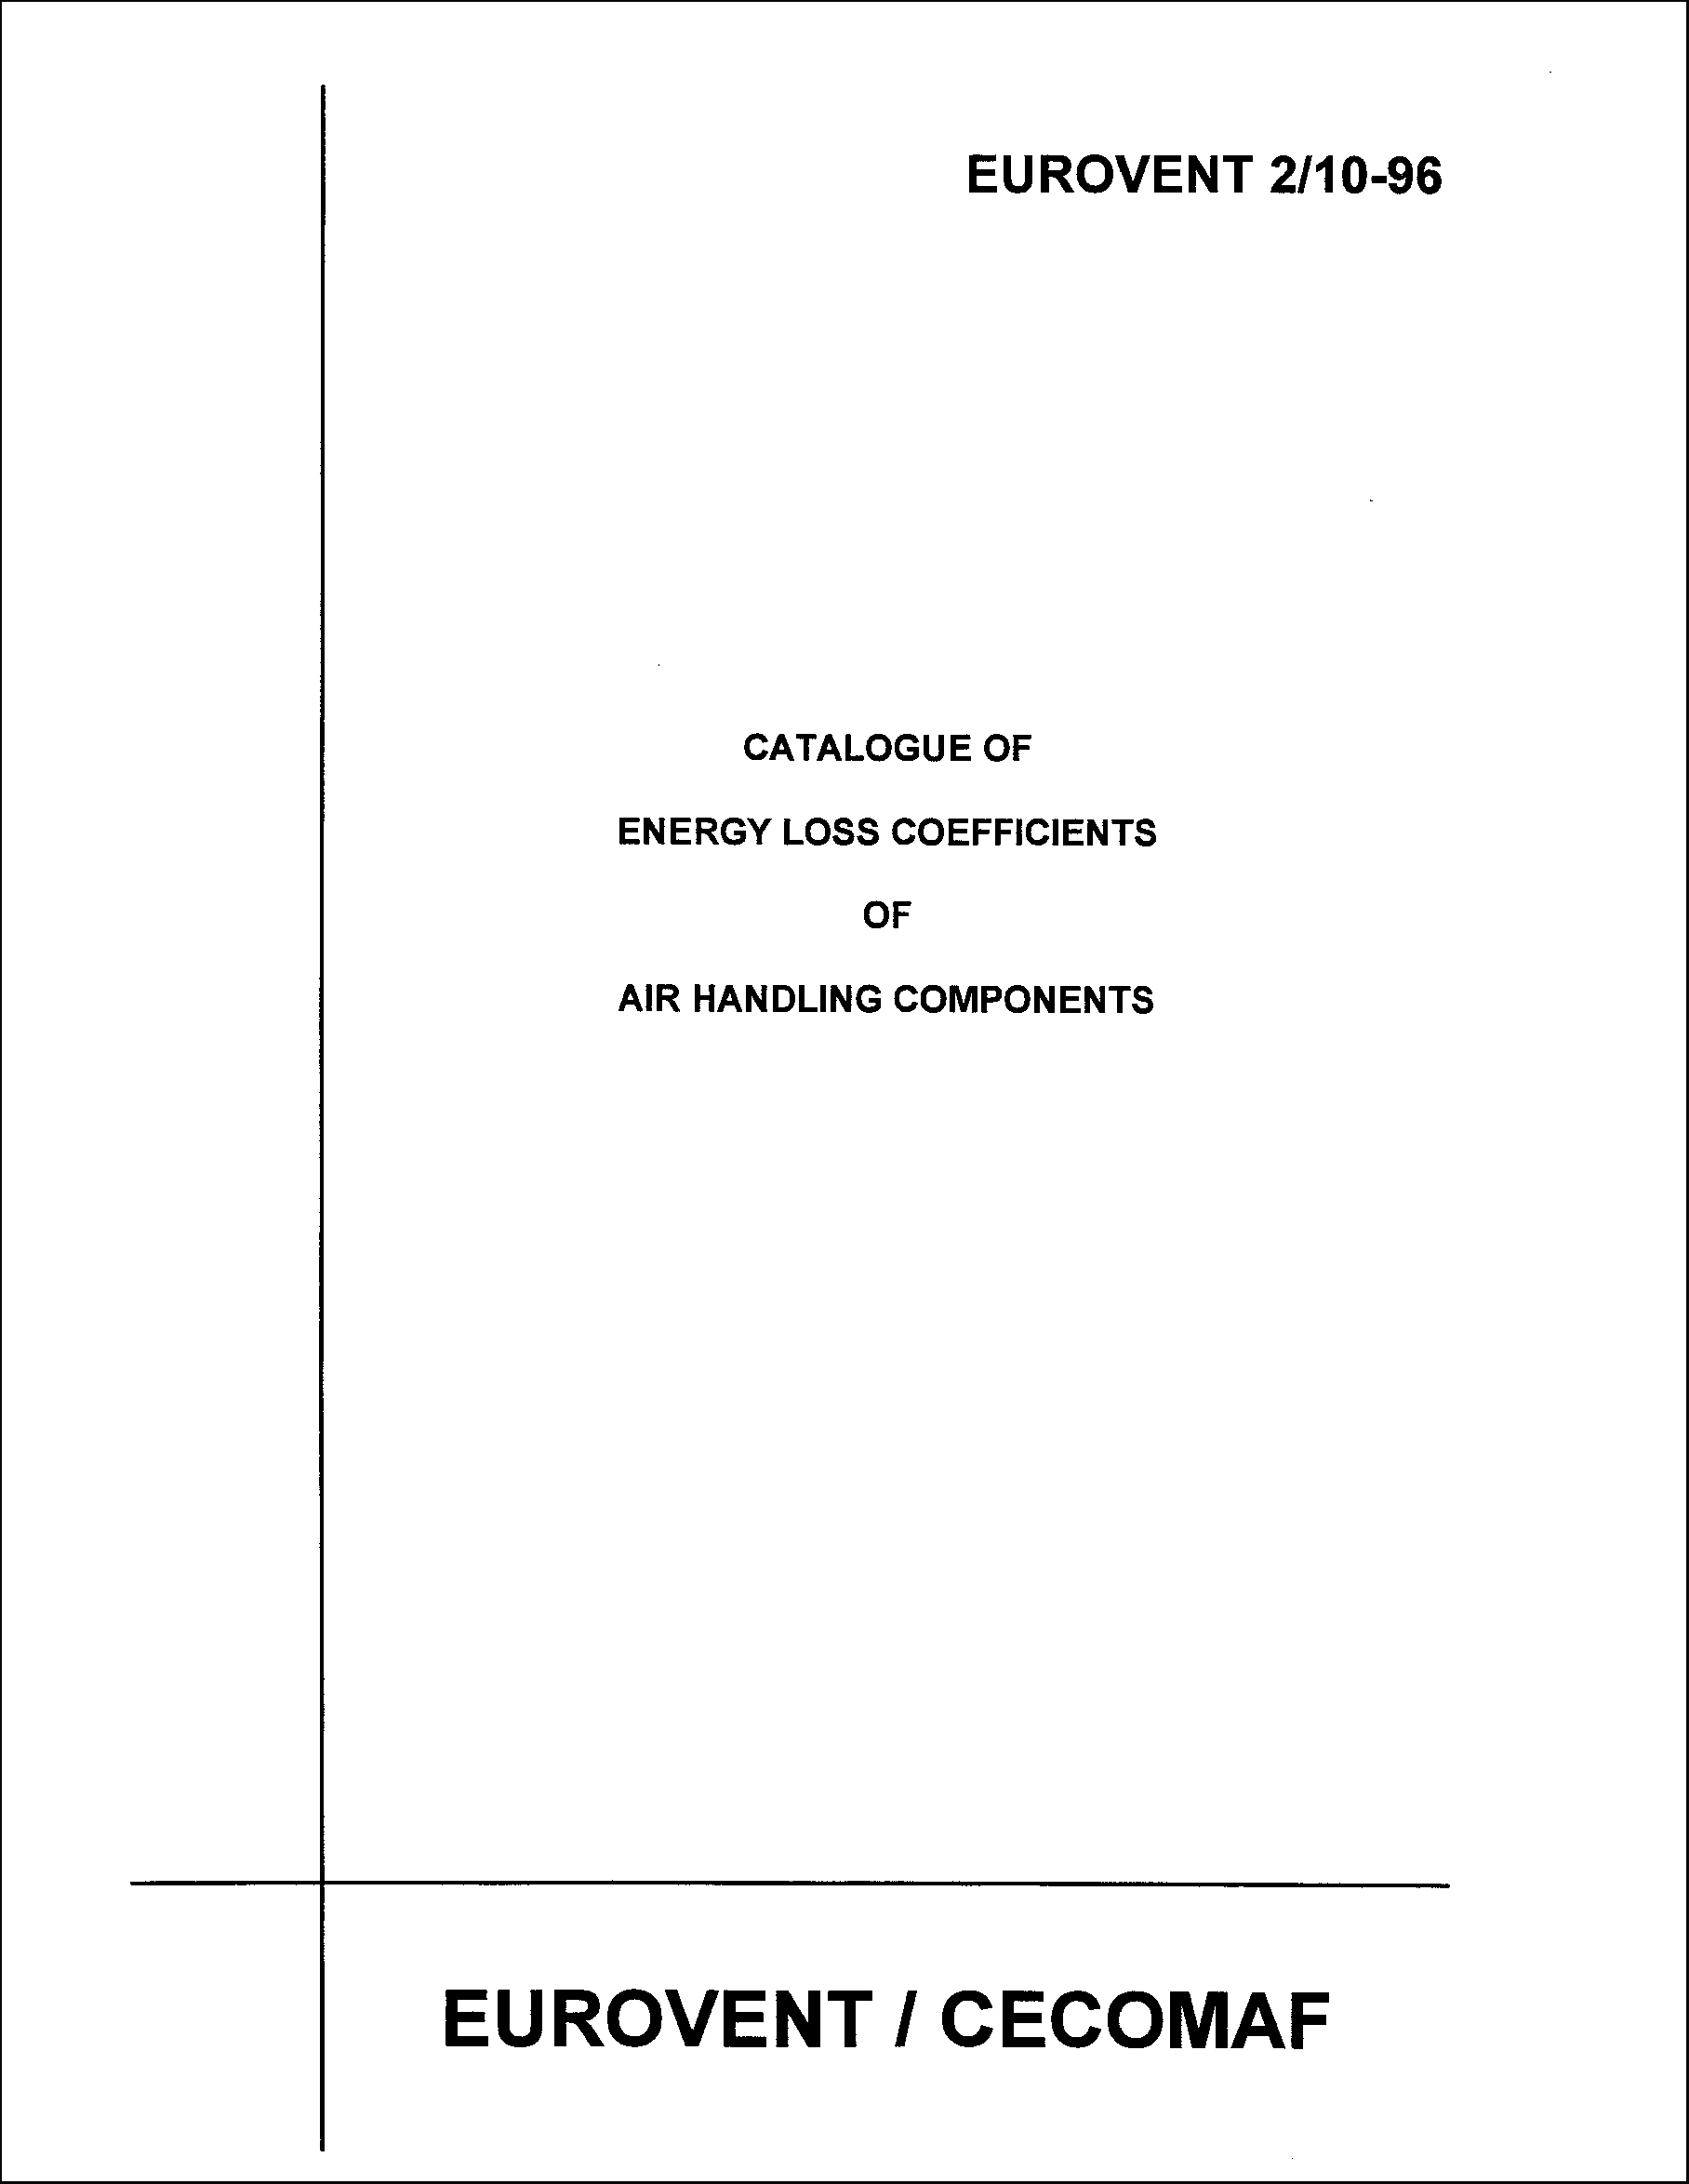 1996 - Catalogue of energy loss coefficients of air handling components